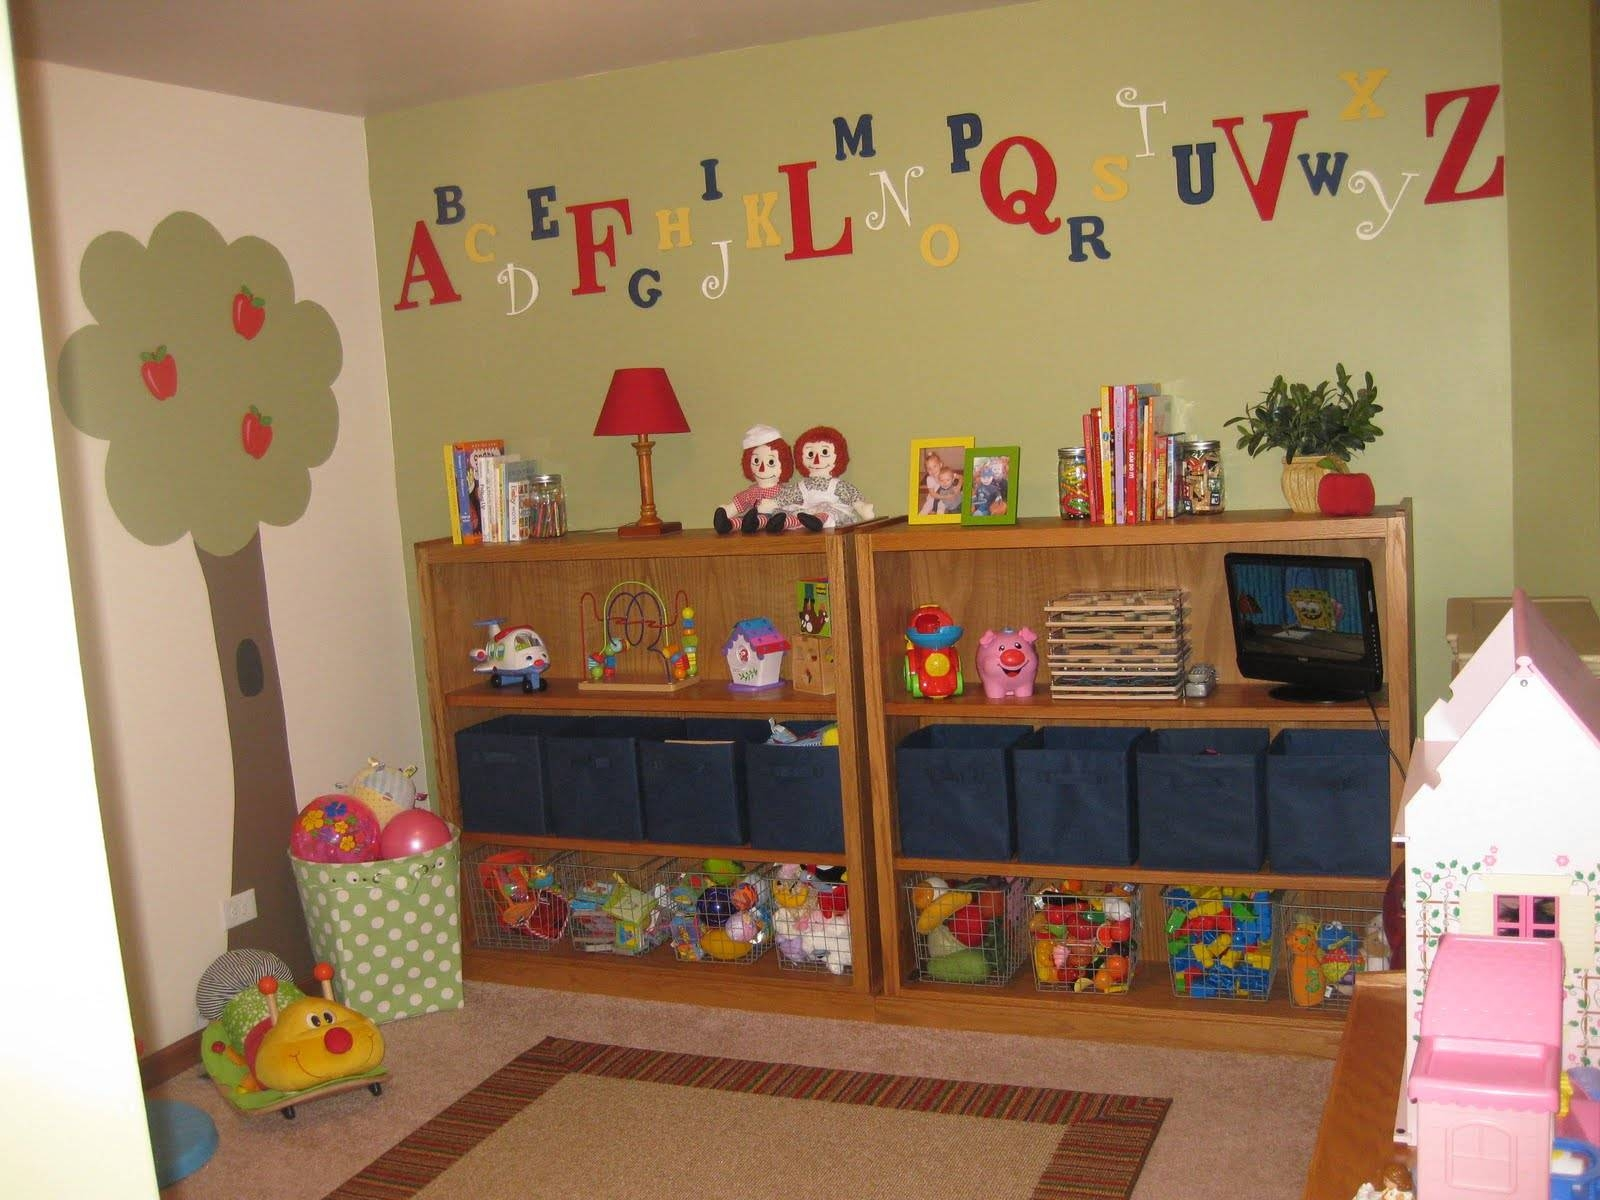 5 Most Inviting Playroom Ideas For Kids - 42 Room throughout 2018 Playroom Wall Art